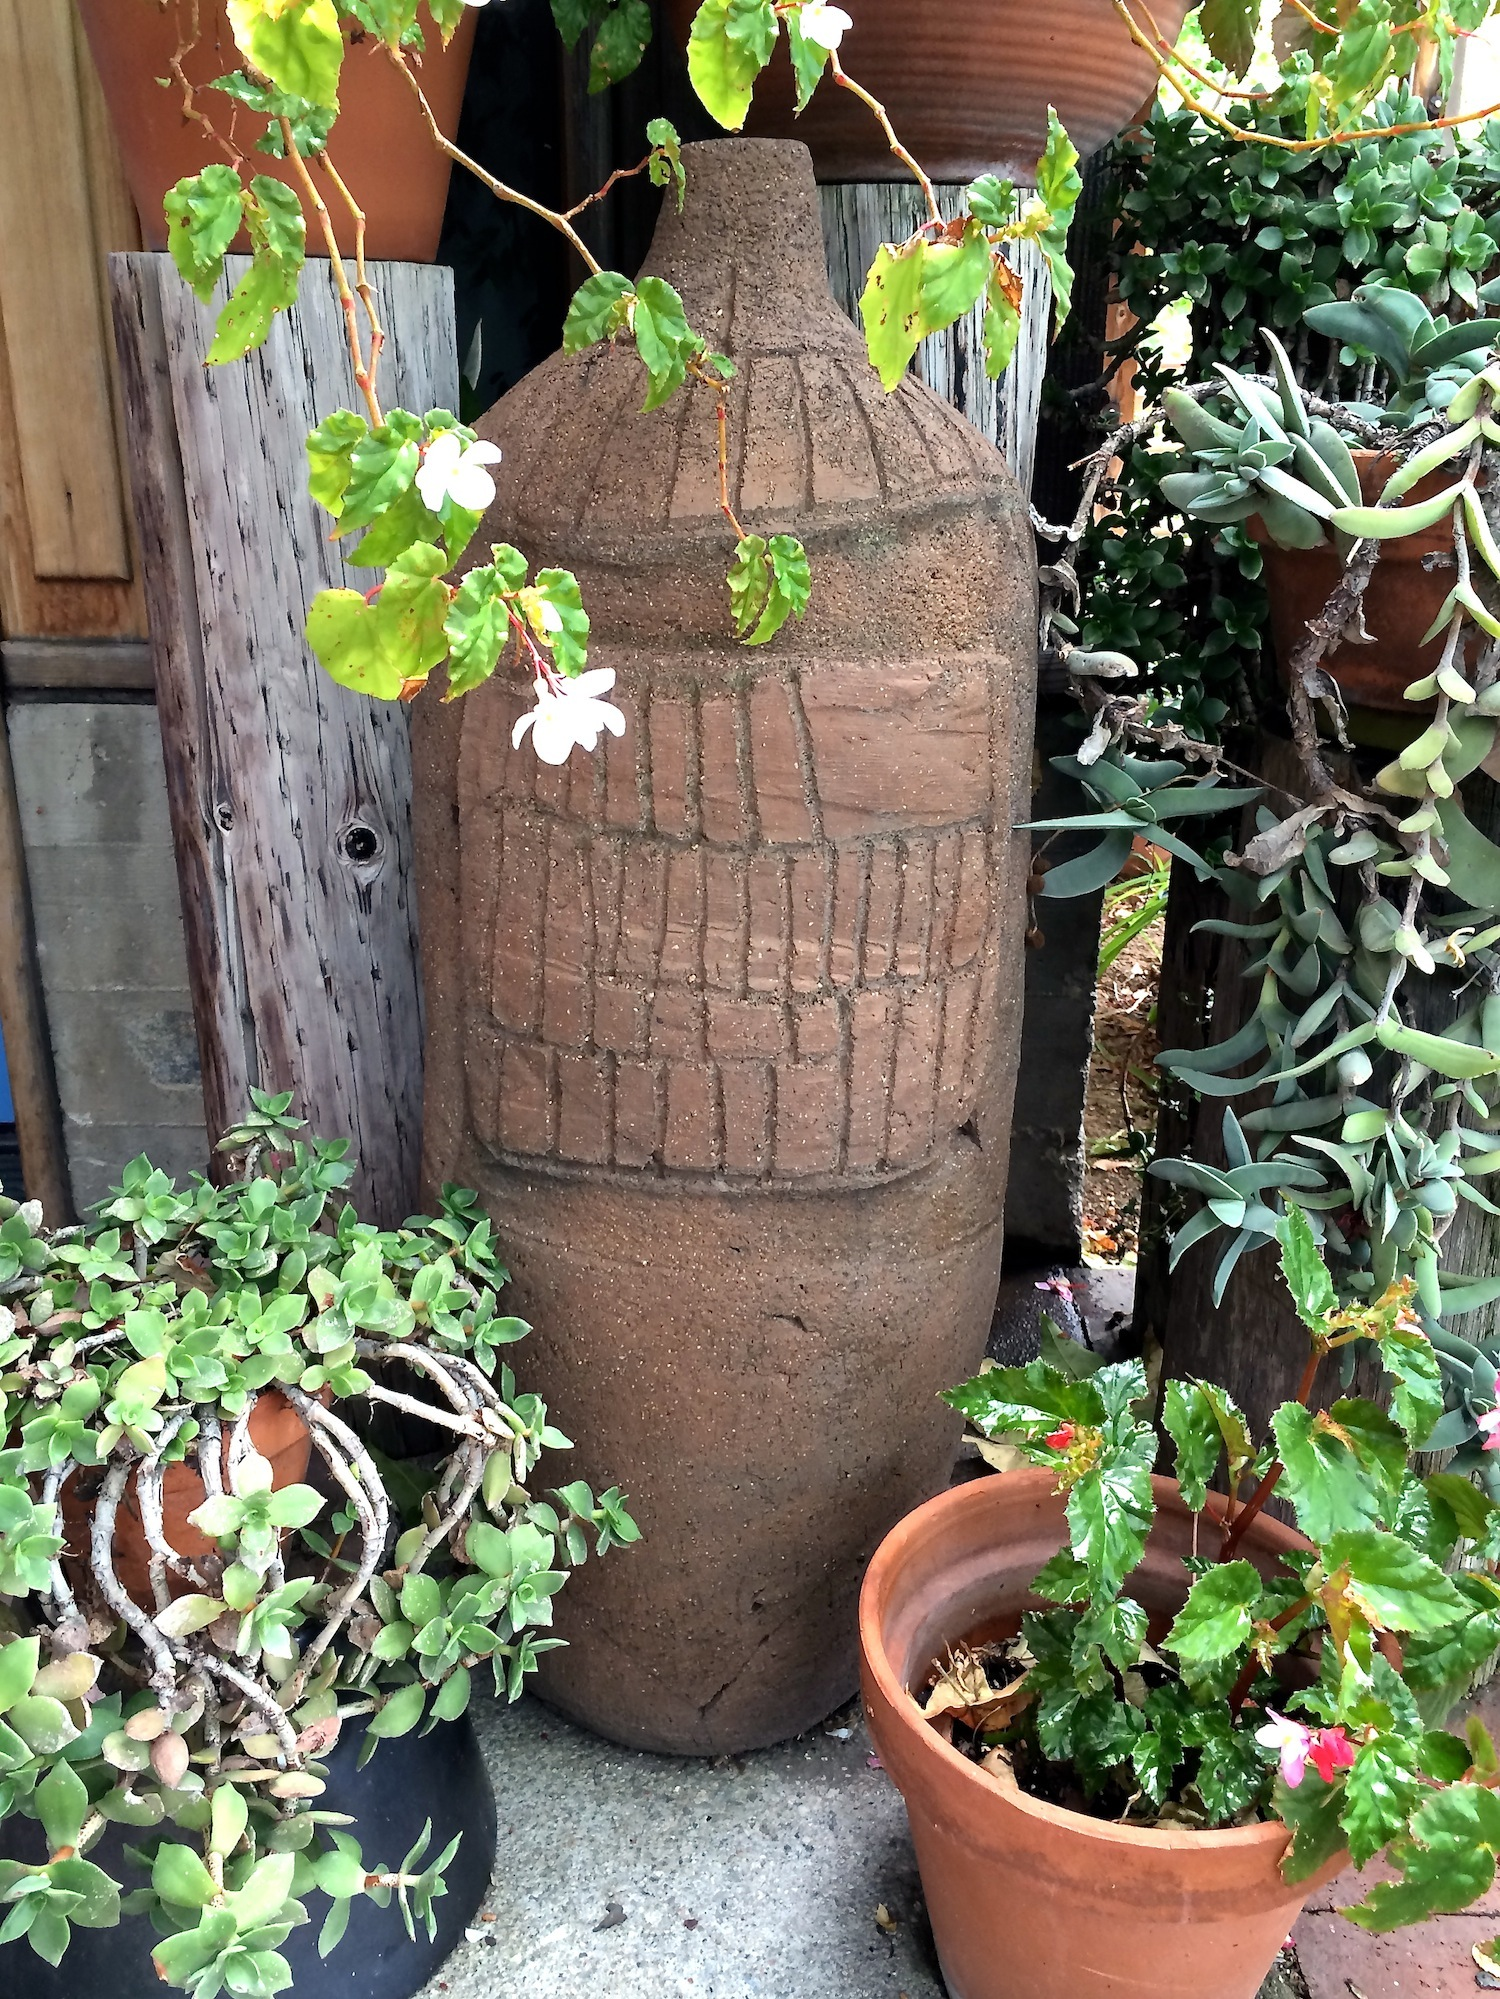 A Bitters' one-of-a-kind pot in the garden.